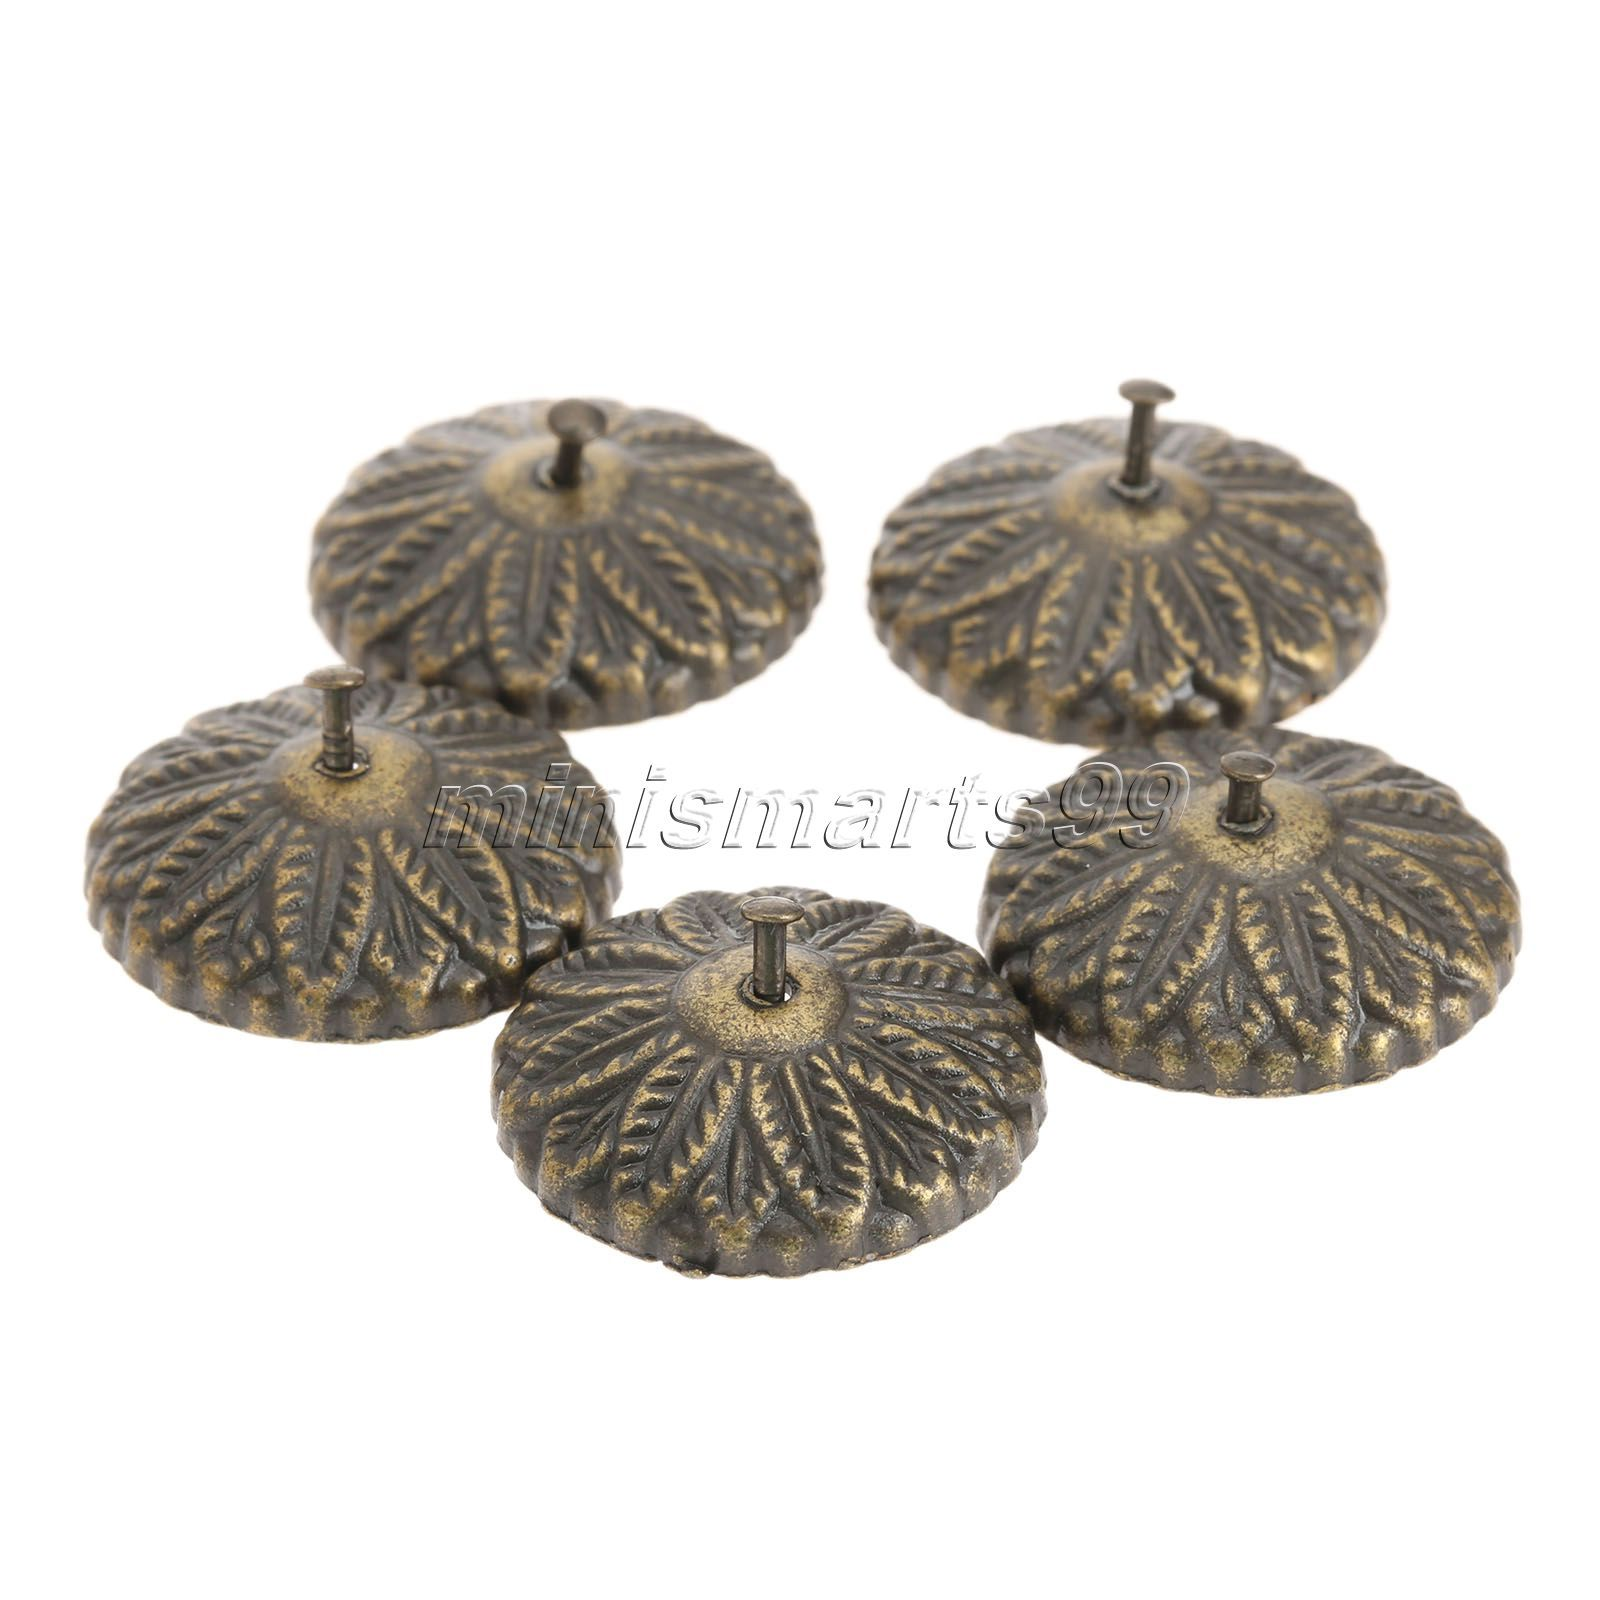 decorative studs for furniture. 50x Decorative Furniture Upholstery Nails Tack Studs Antique Bronze Carved Drum Wooden Jewelry Box Bag For G